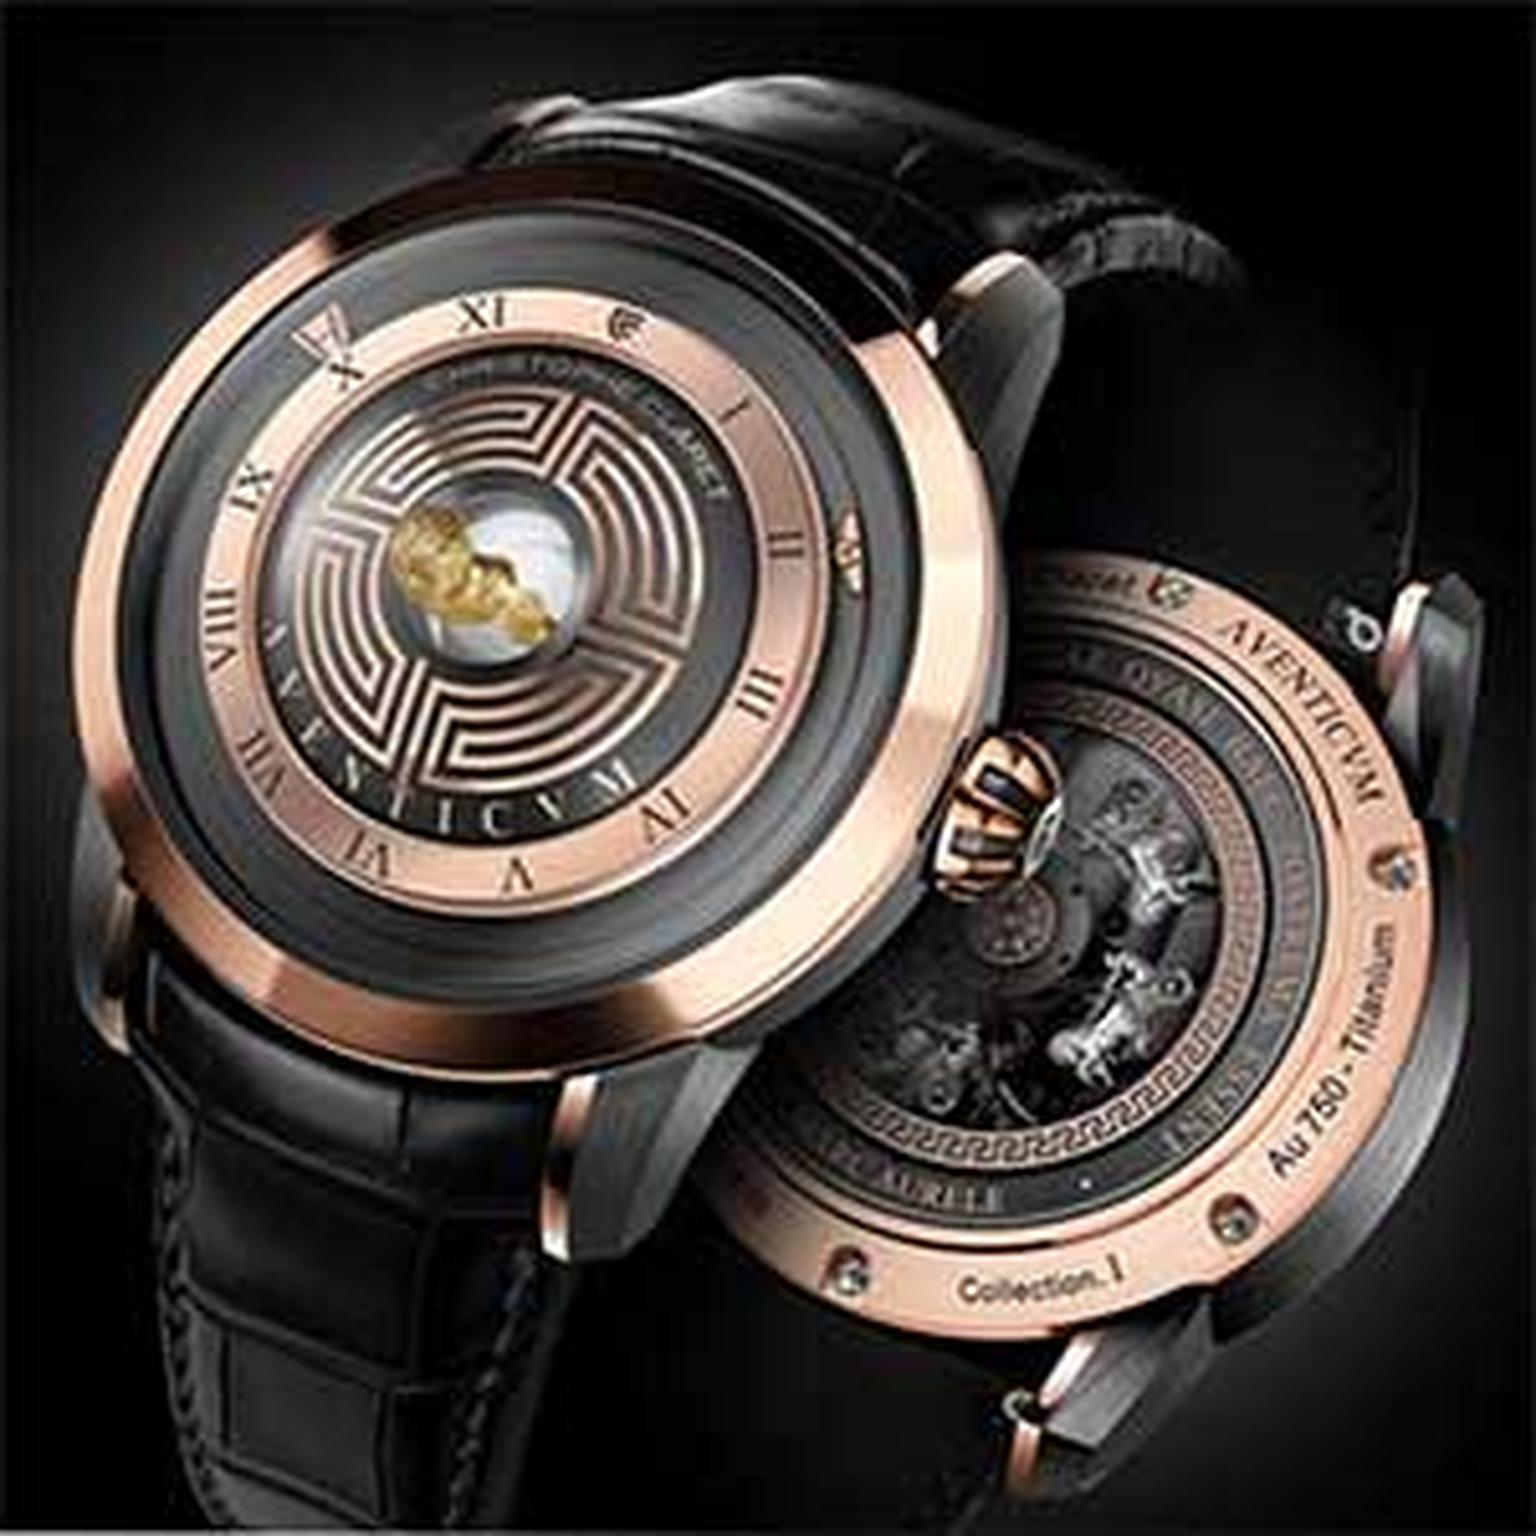 Christophe Claret Roman watch